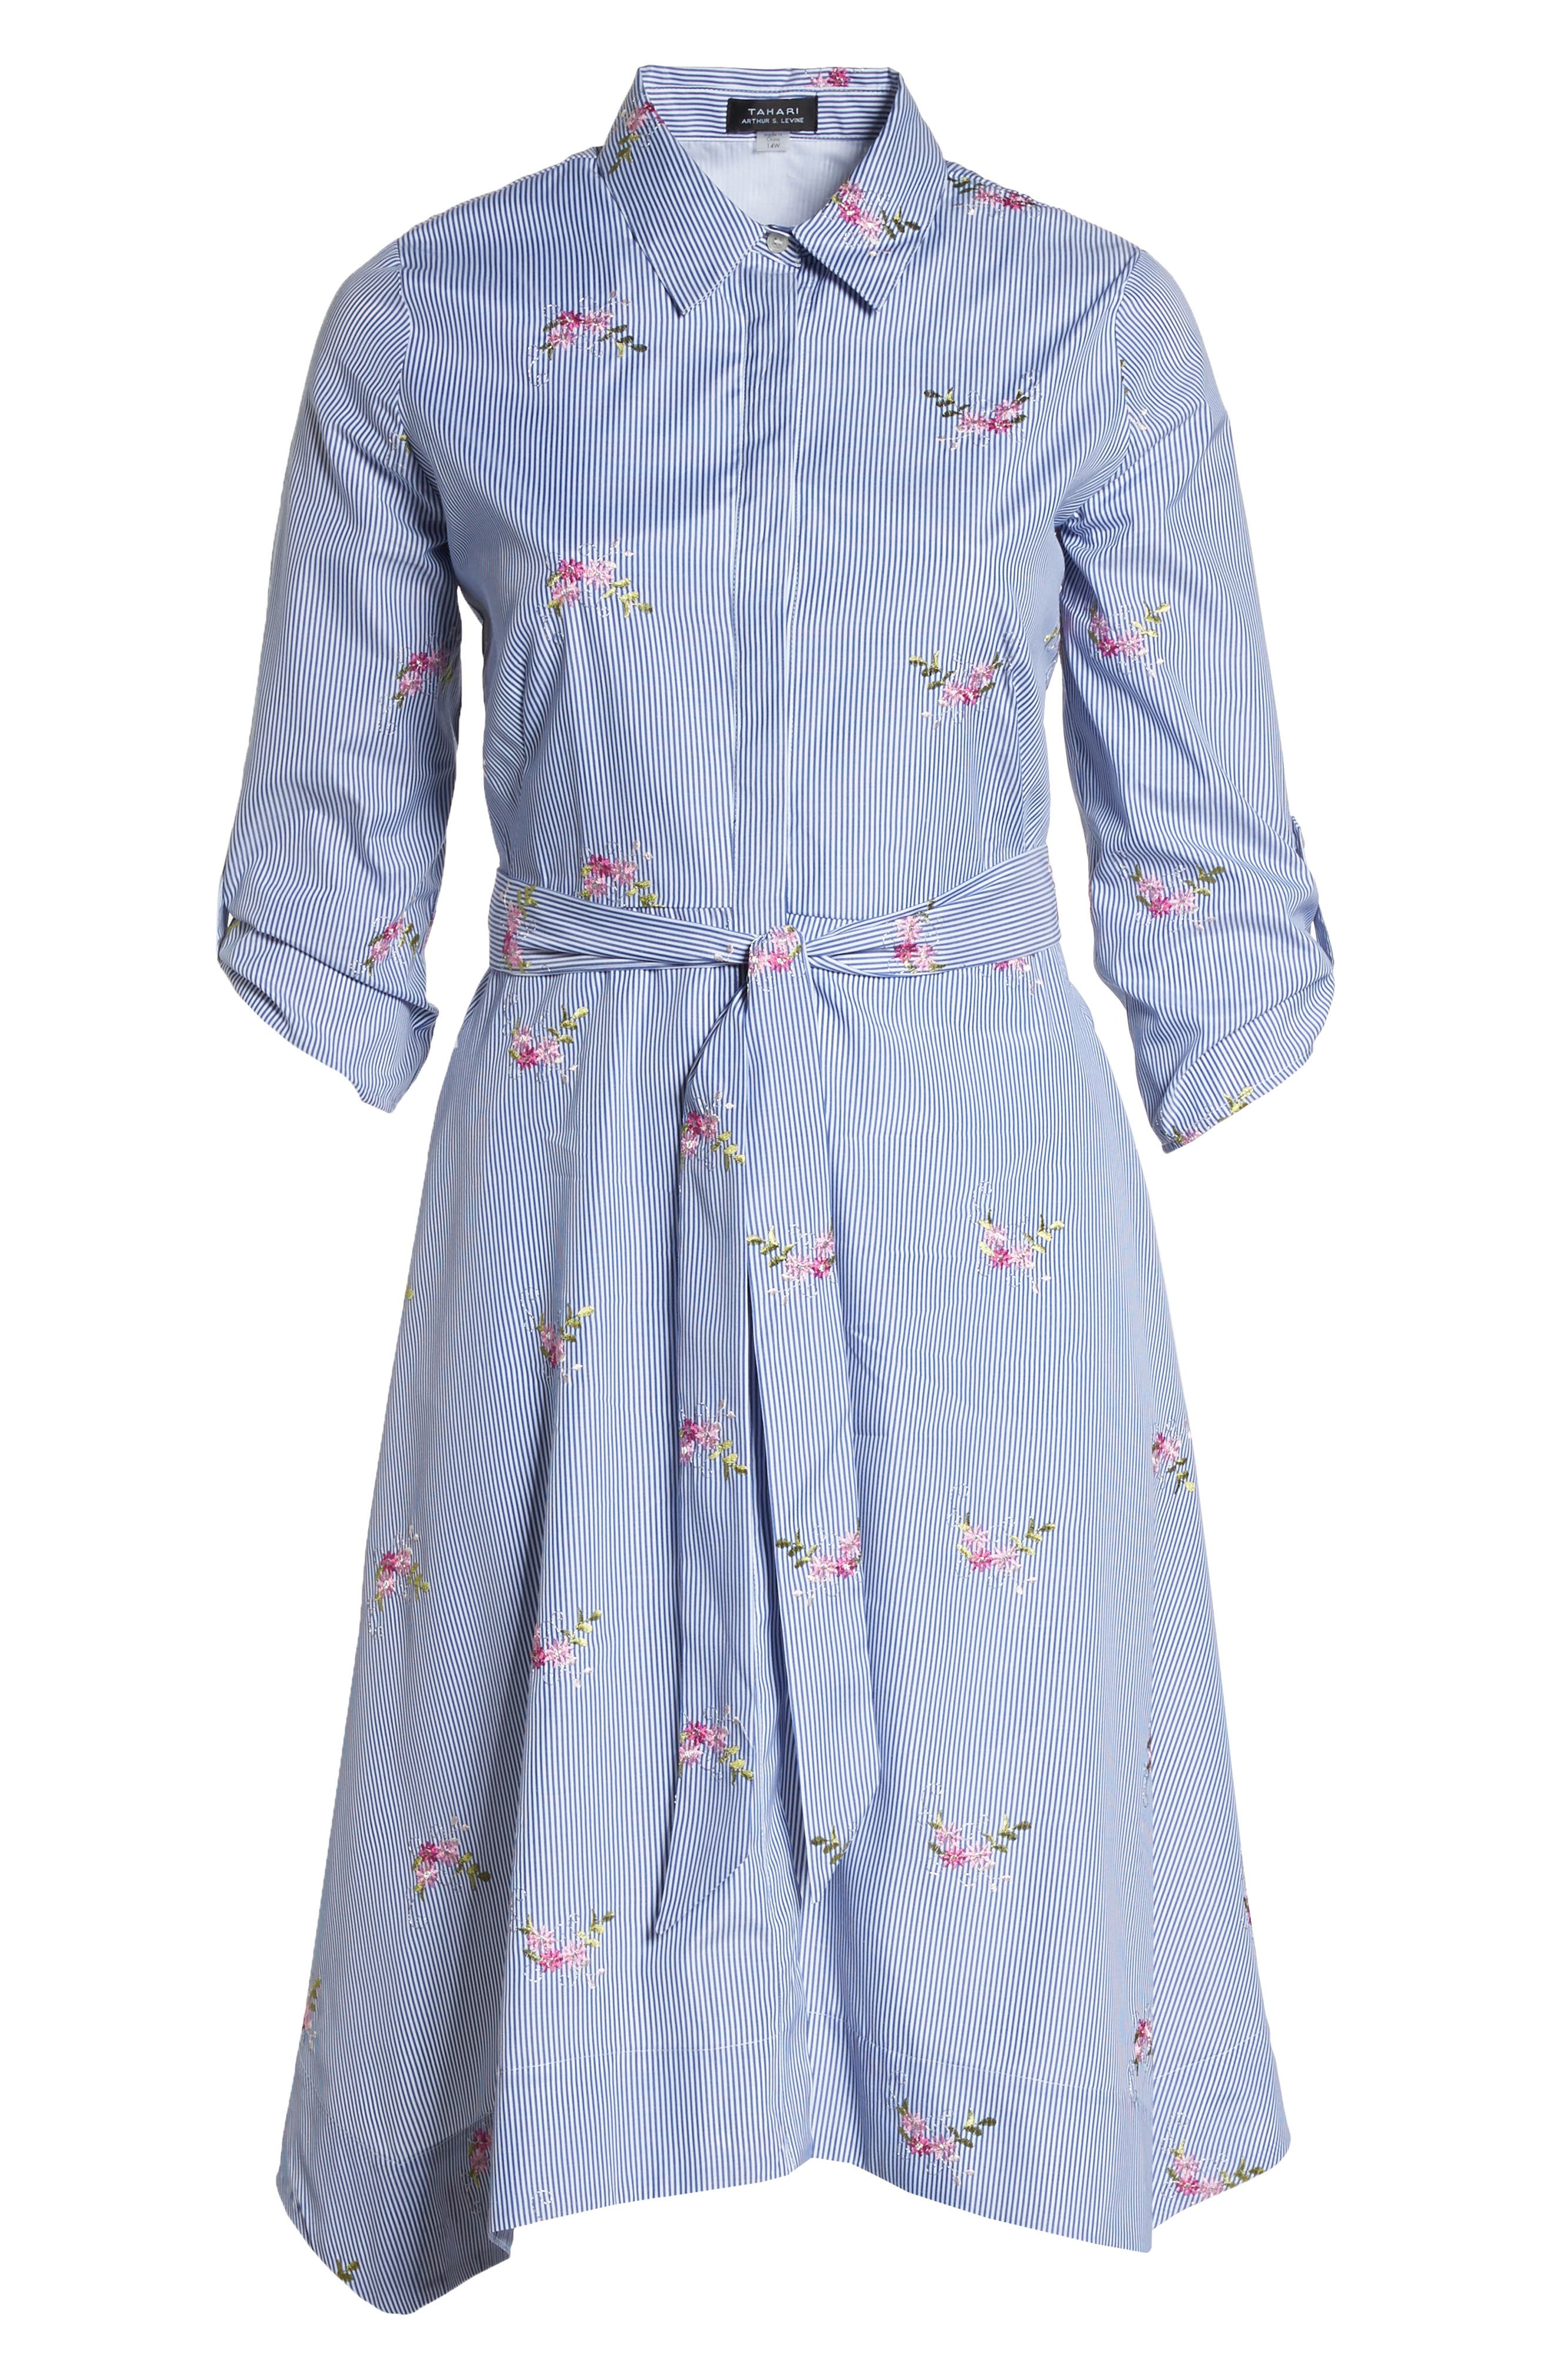 Embroidered Stripe Shirtdress,                             Alternate thumbnail 6, color,                             Navy/ White/ Pink